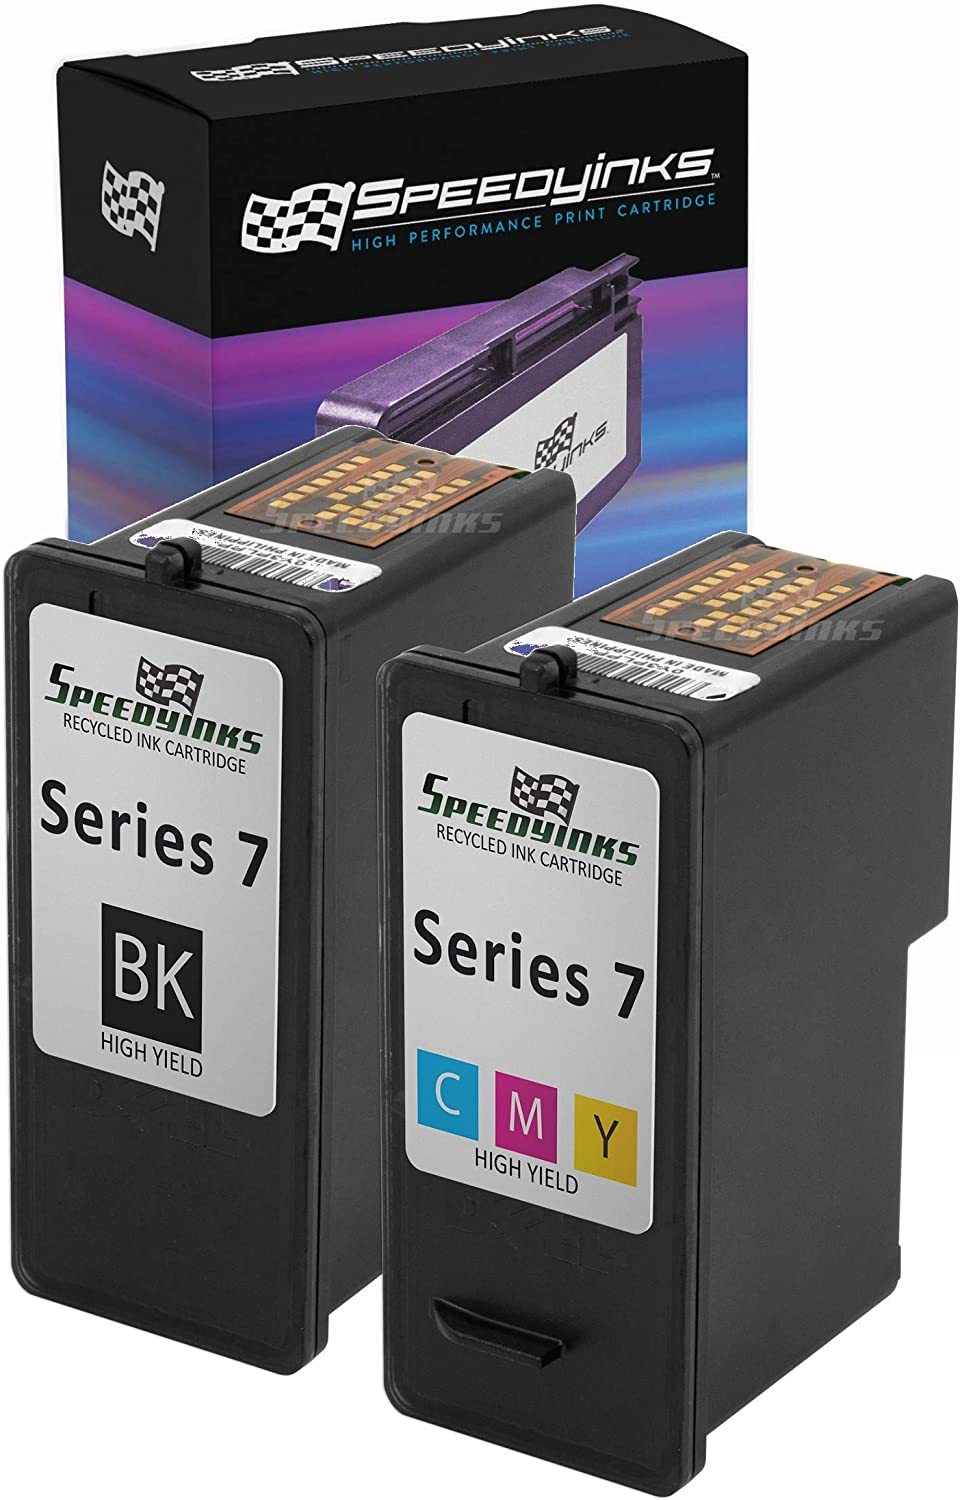 Speedy Inks Remanfactured Ink Cartridge Replacement for Dell GR274 & GR277 High-Yield (1 Black, 1 Color, 2-Pack)